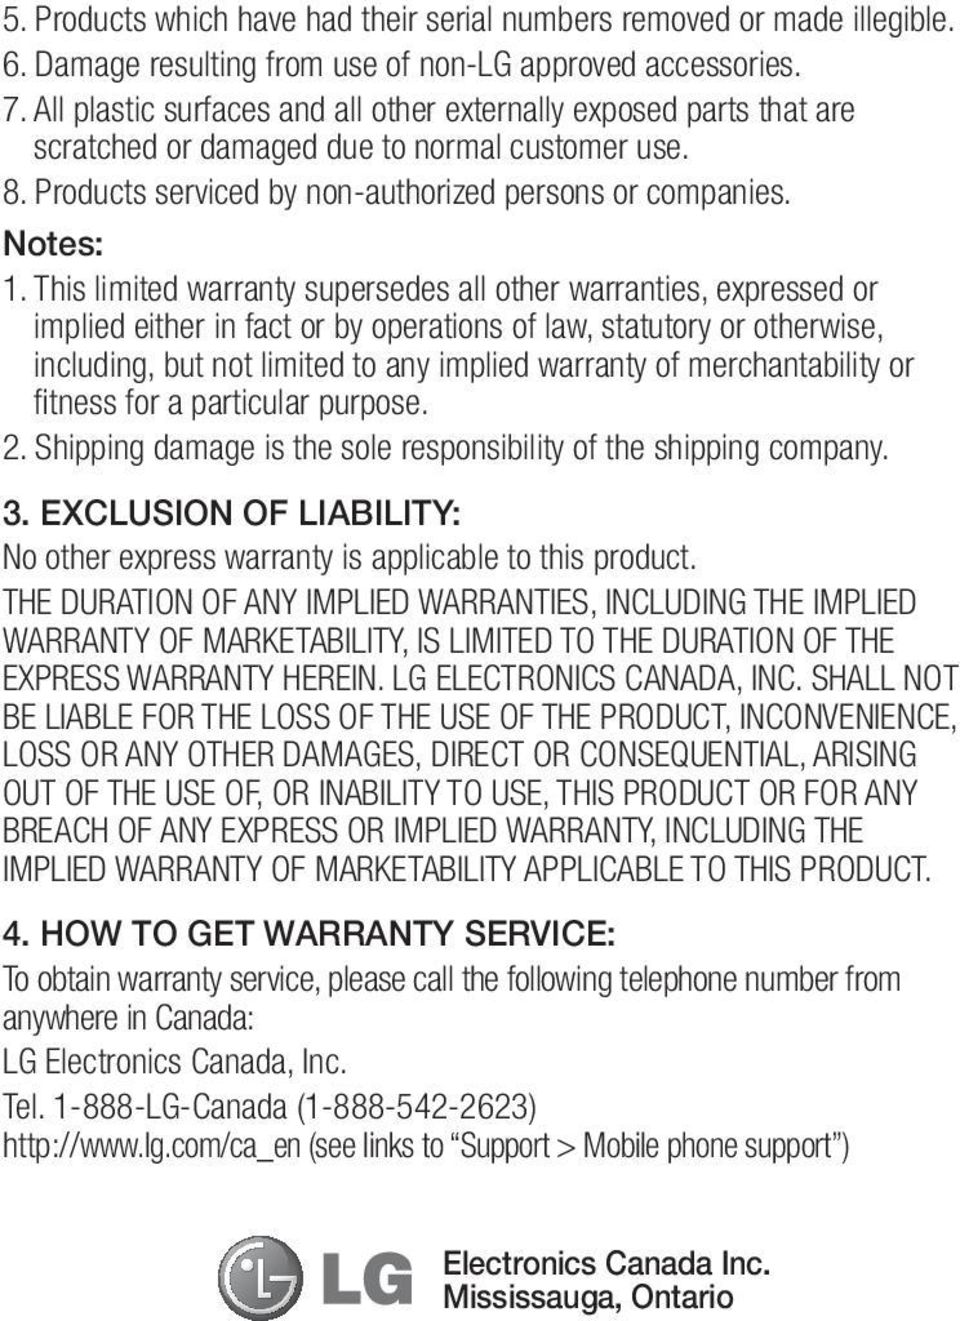 This limited warranty supersedes all other warranties, expressed or implied either in fact or by operations of law, statutory or otherwise, including, but not limited to any implied warranty of